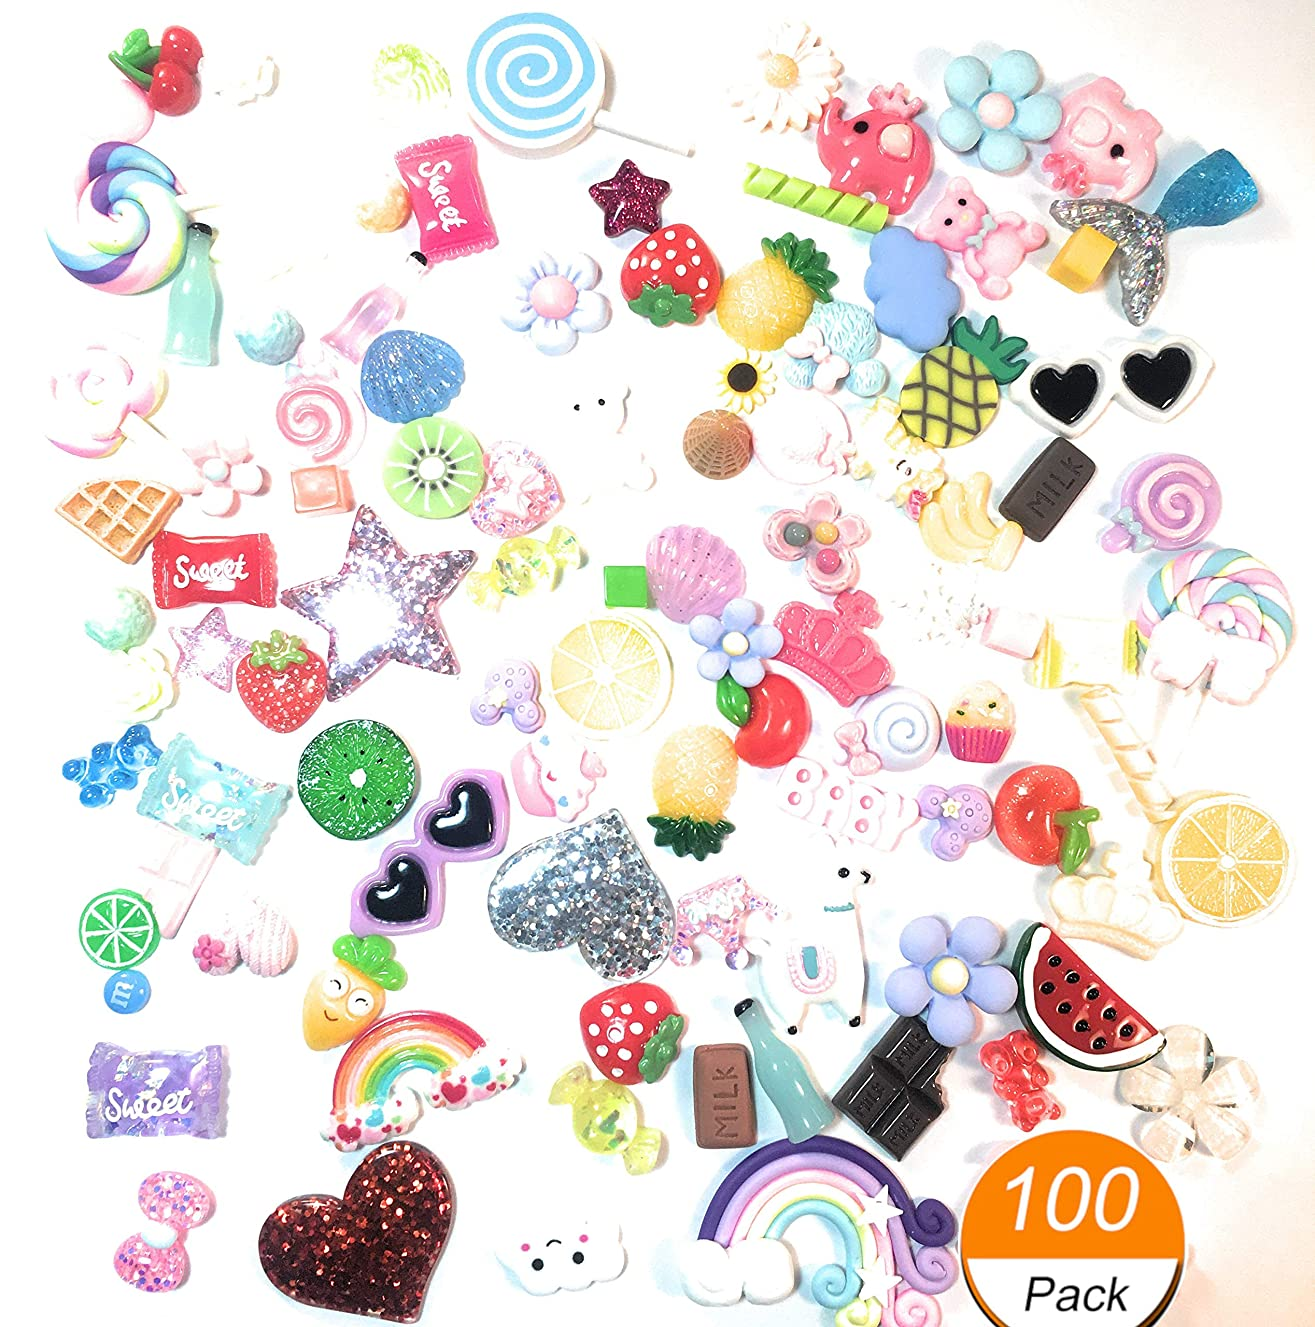 Super Cute Slime Charms - 100 Pieces - Mixed Flat Resin for Scrap-Booking and Crafts - Assorted Colors, Shapes and Sizes